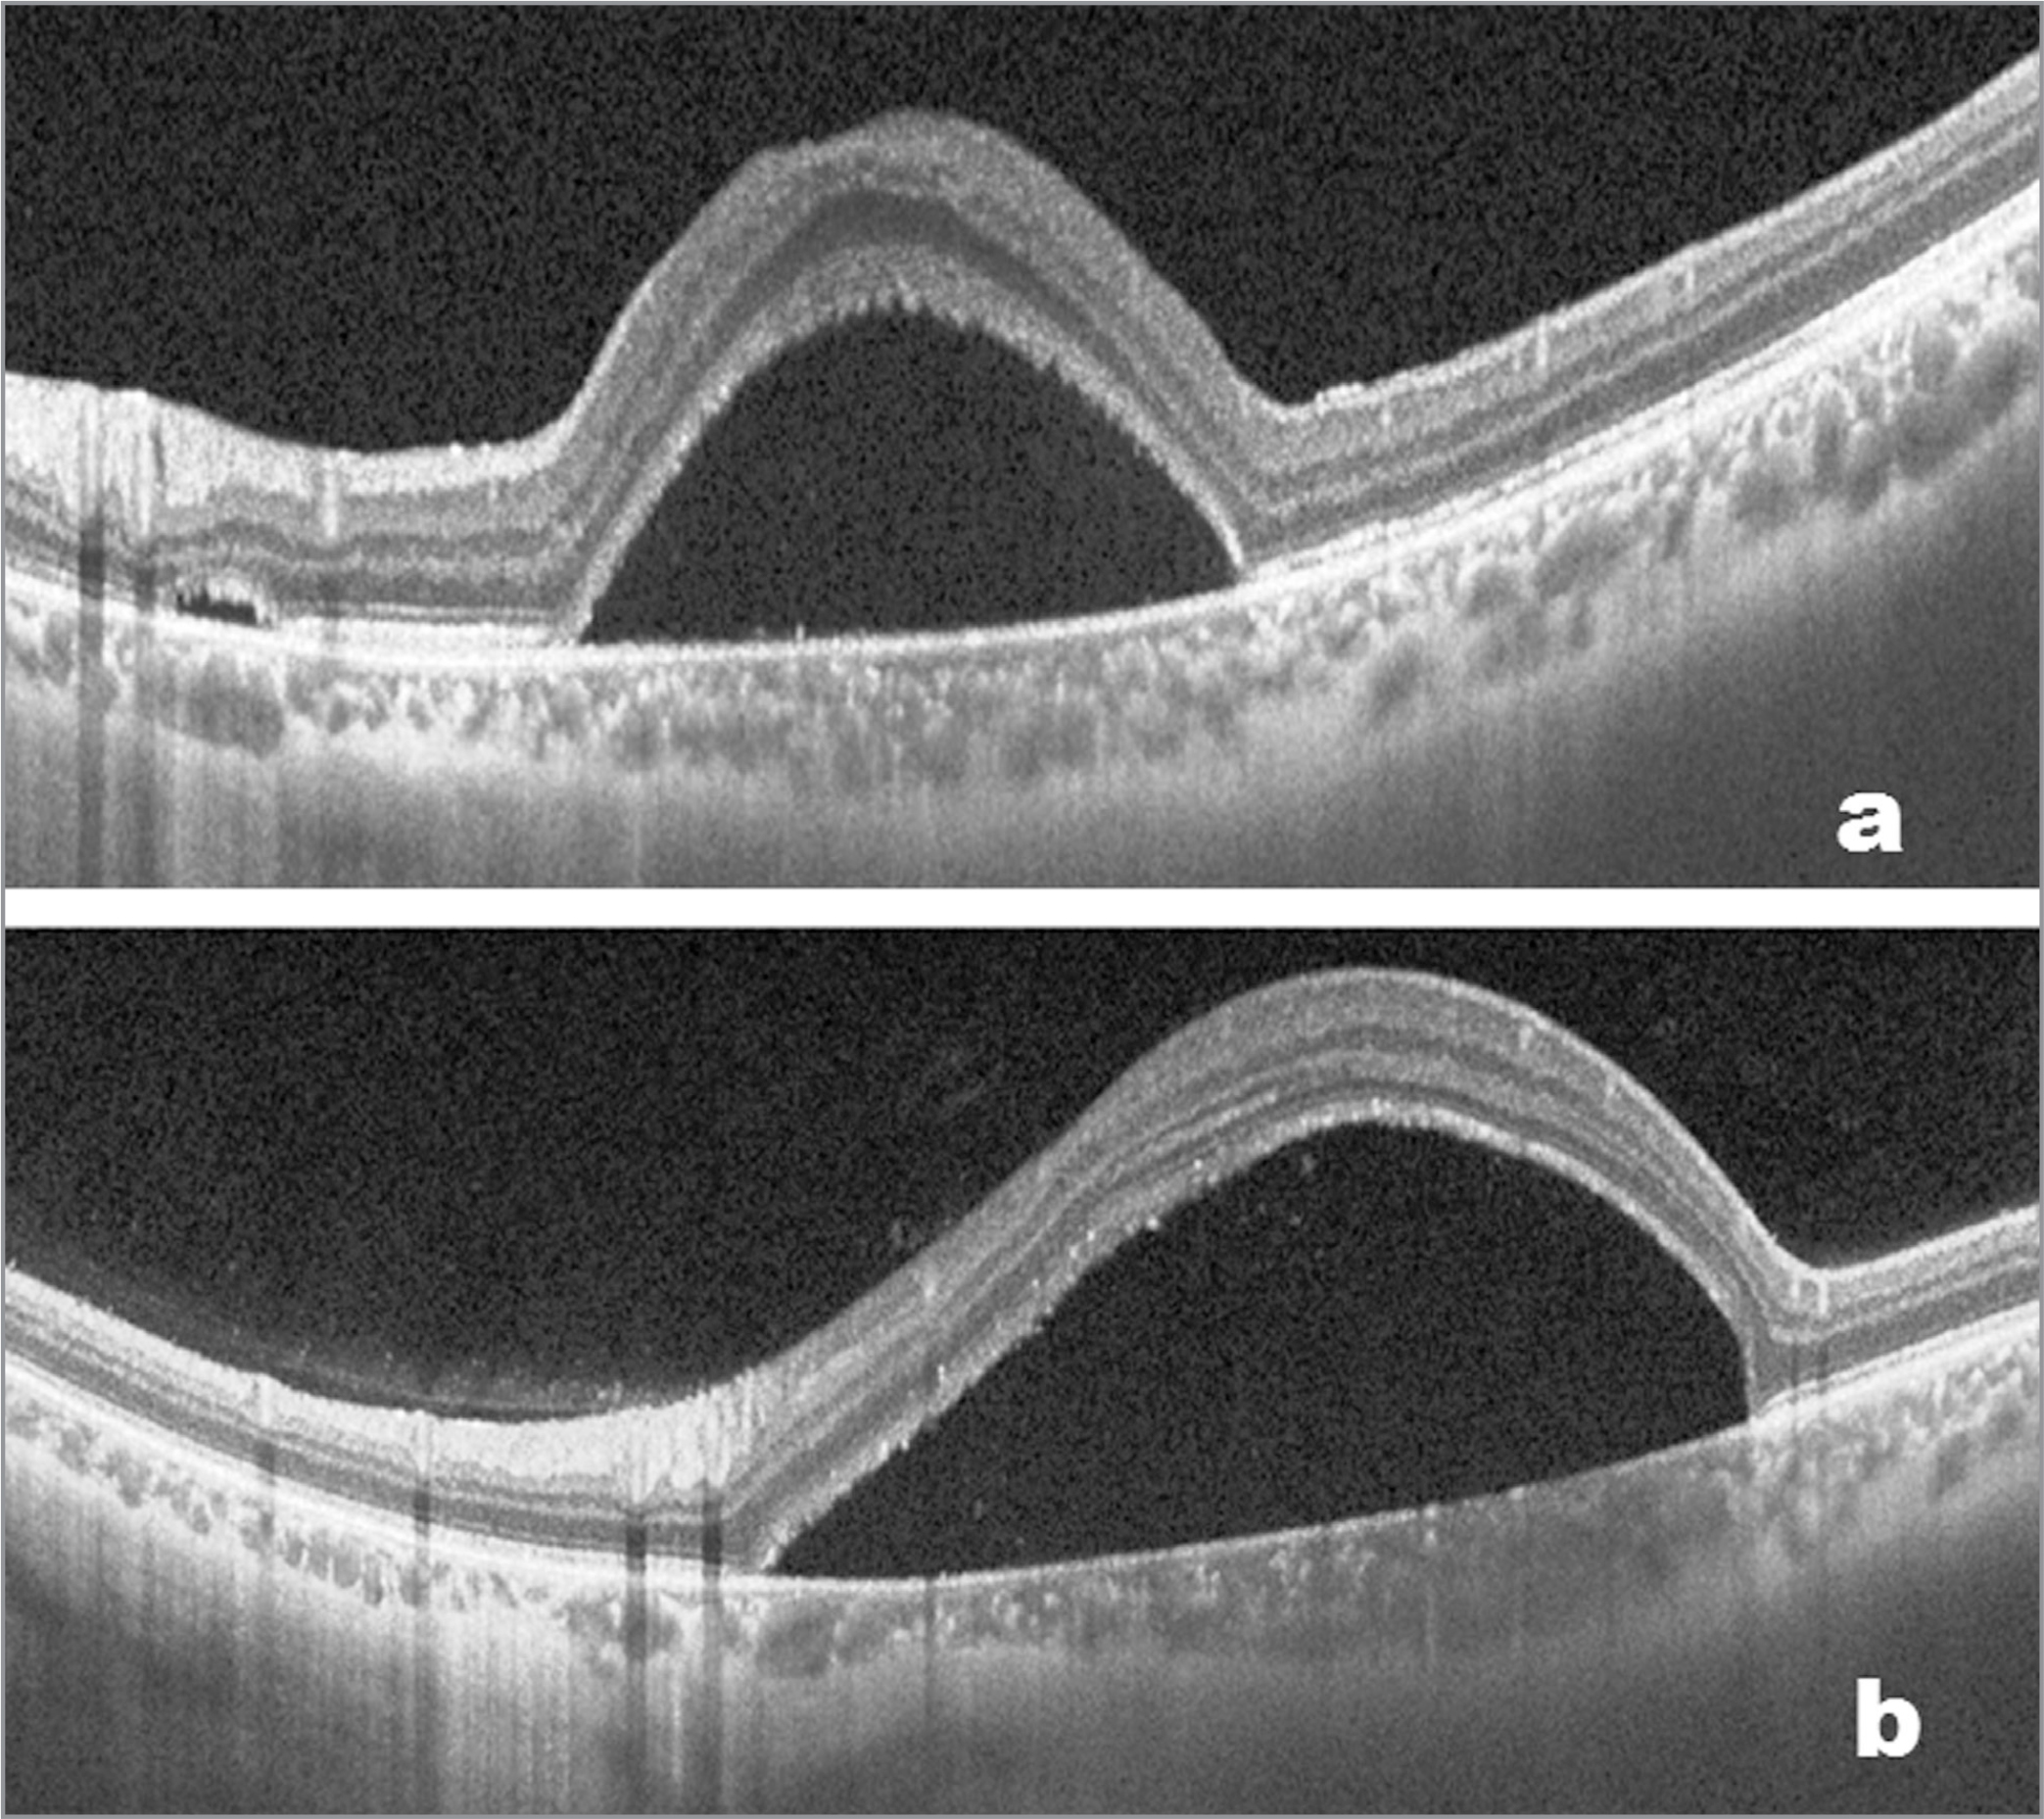 Preoperative (a) and postoperative (b) optical coherence tomography scan of a patient in group 2 showing a decrease but persistent neurosensory detachment at 12 months postsurgery with internal limiting membrane ILM peeling alone in group 2.